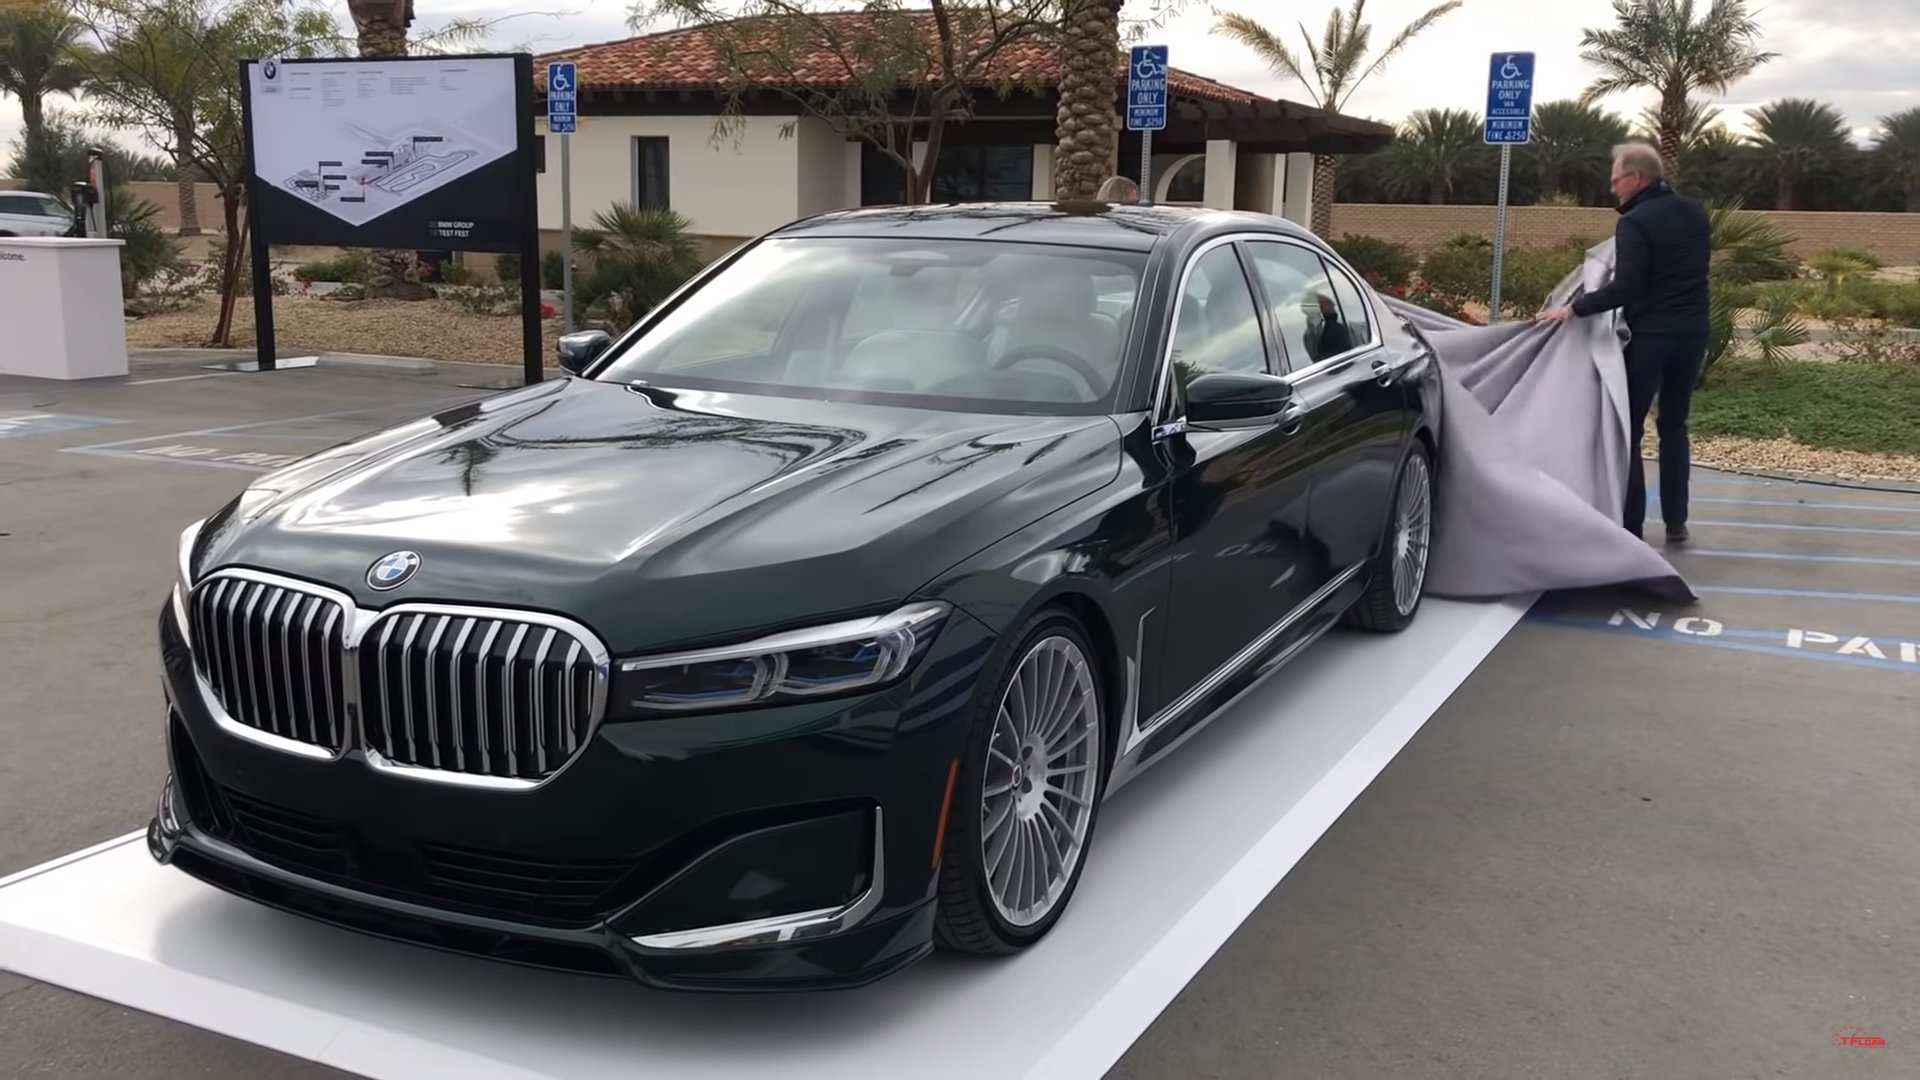 62 Concept of BMW B7 Alpina 2020 Price Speed Test by BMW B7 Alpina 2020 Price